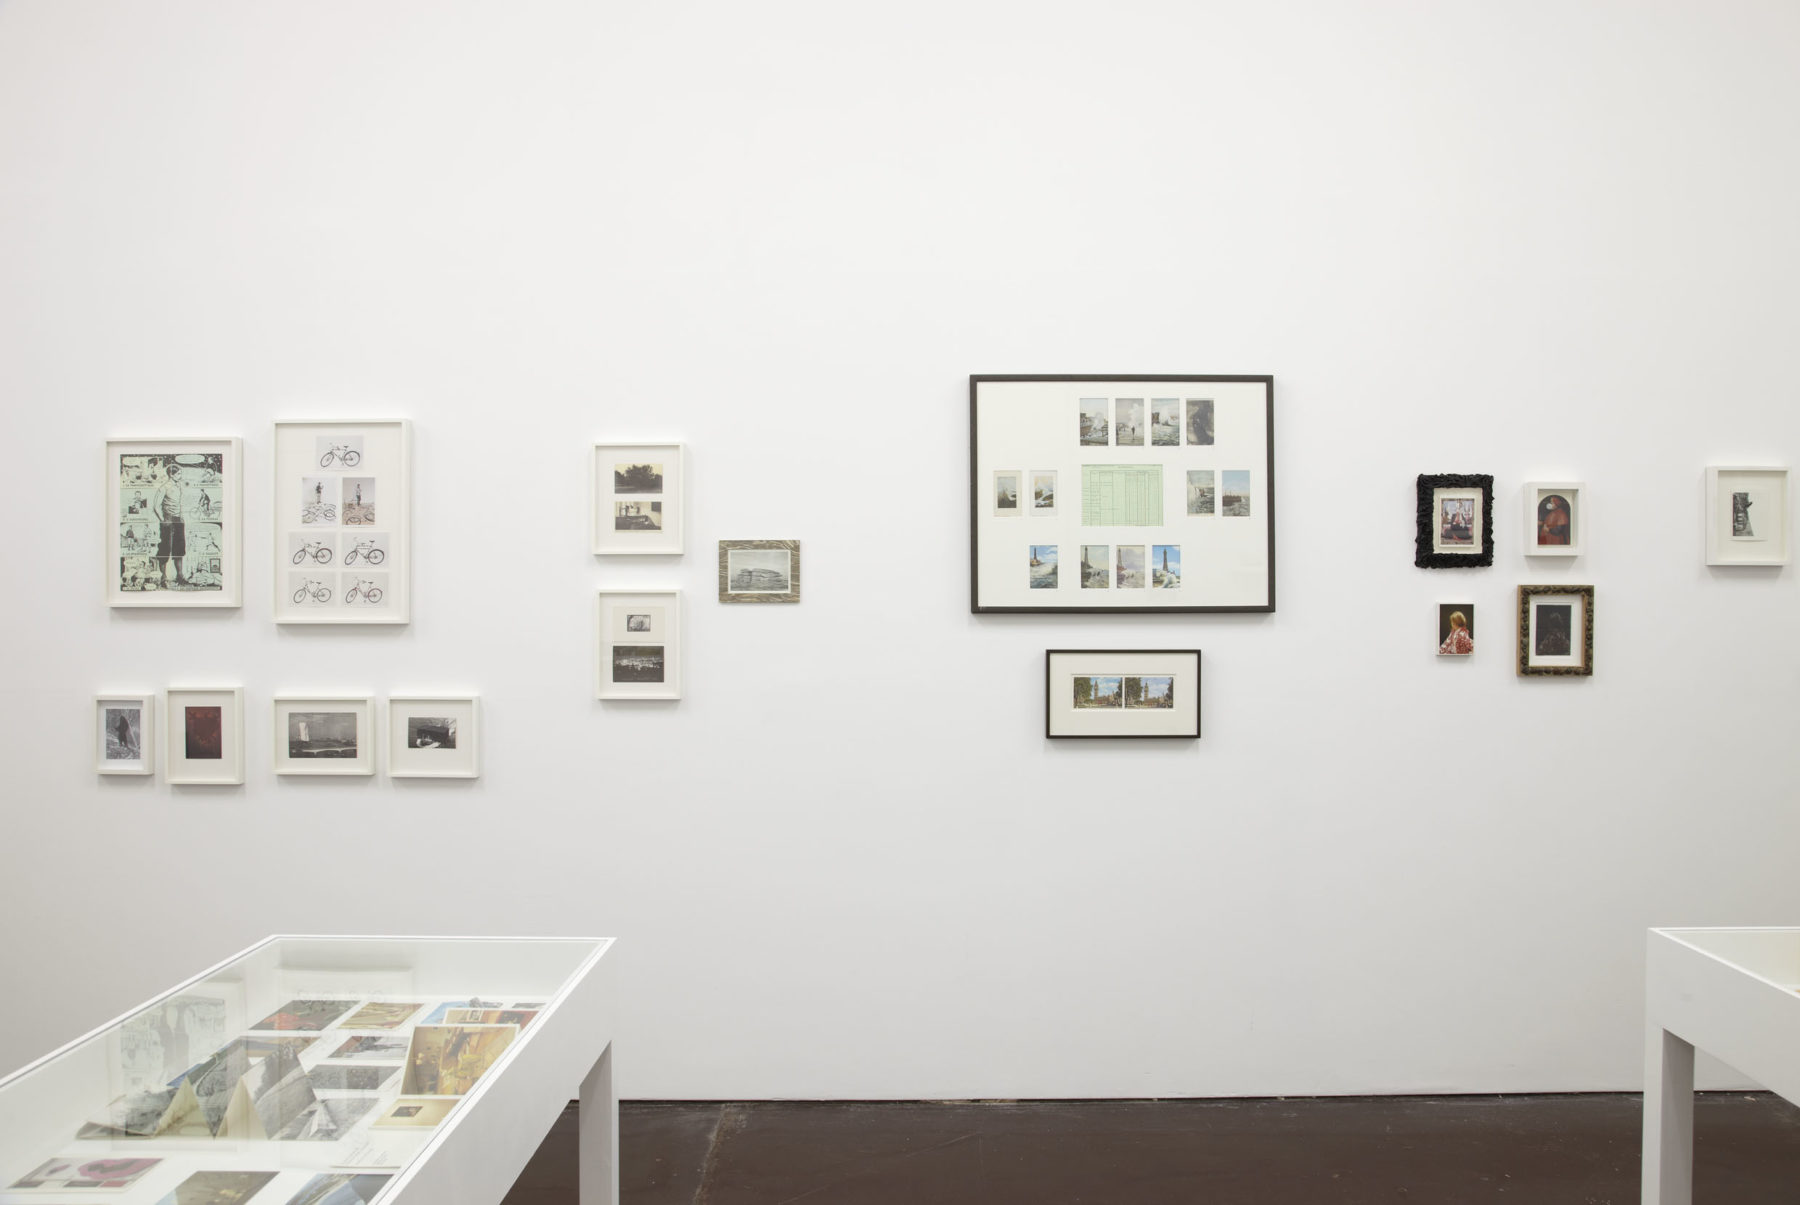 Installation view of The Artists' Postcard Show (2012). Various postcards are displayed in museum cases and hung on the wall in frames.